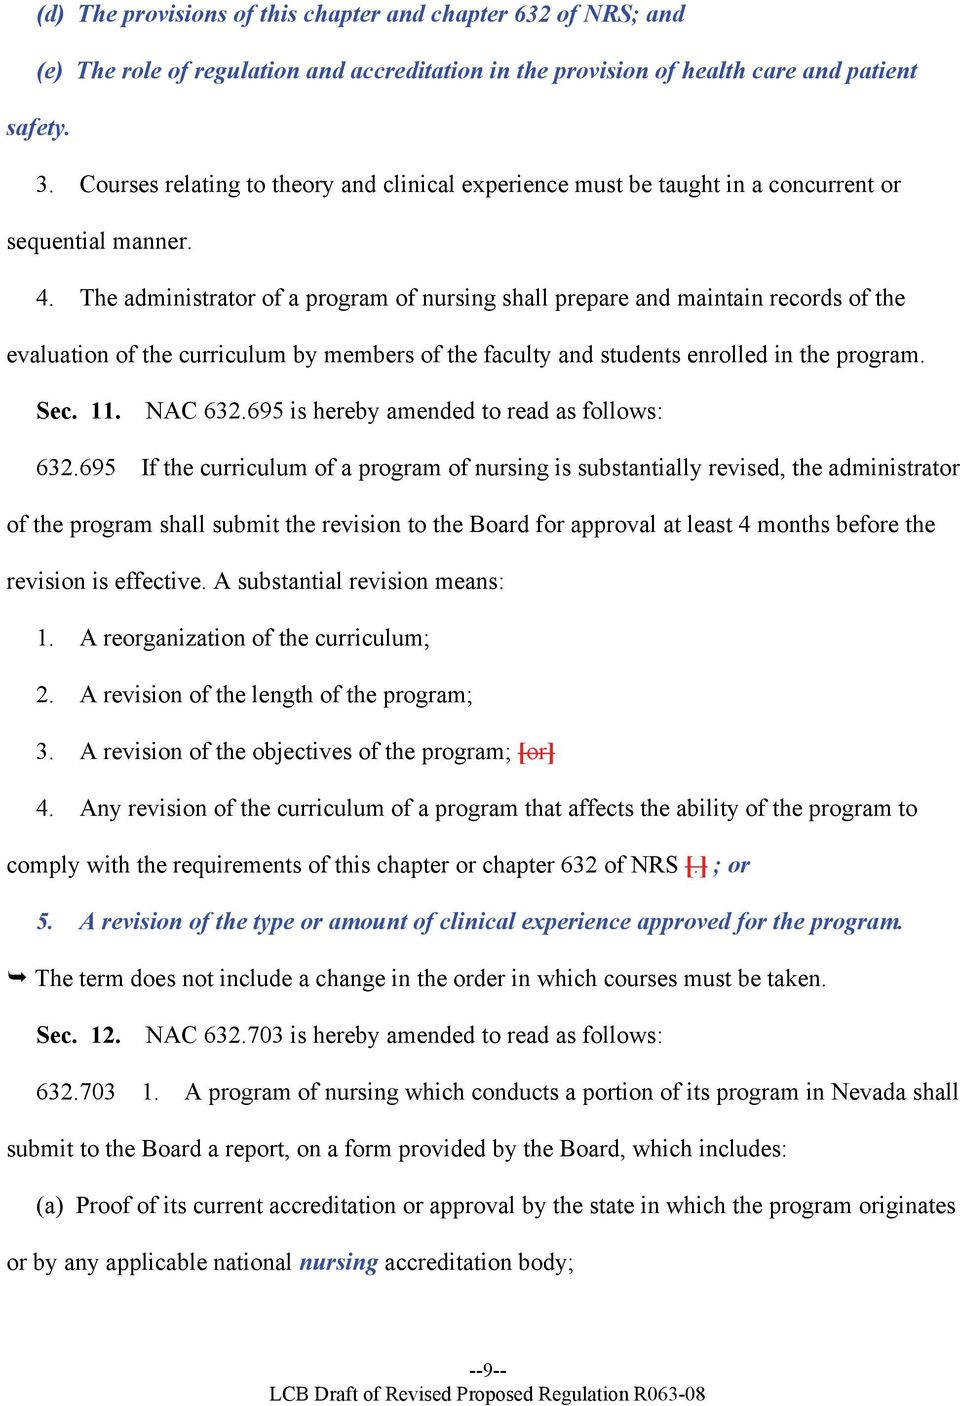 The administrator of a program of nursing shall prepare and maintain records of the evaluation of the curriculum by members of the faculty and students enrolled in the program. Sec. 11. NAC 632.